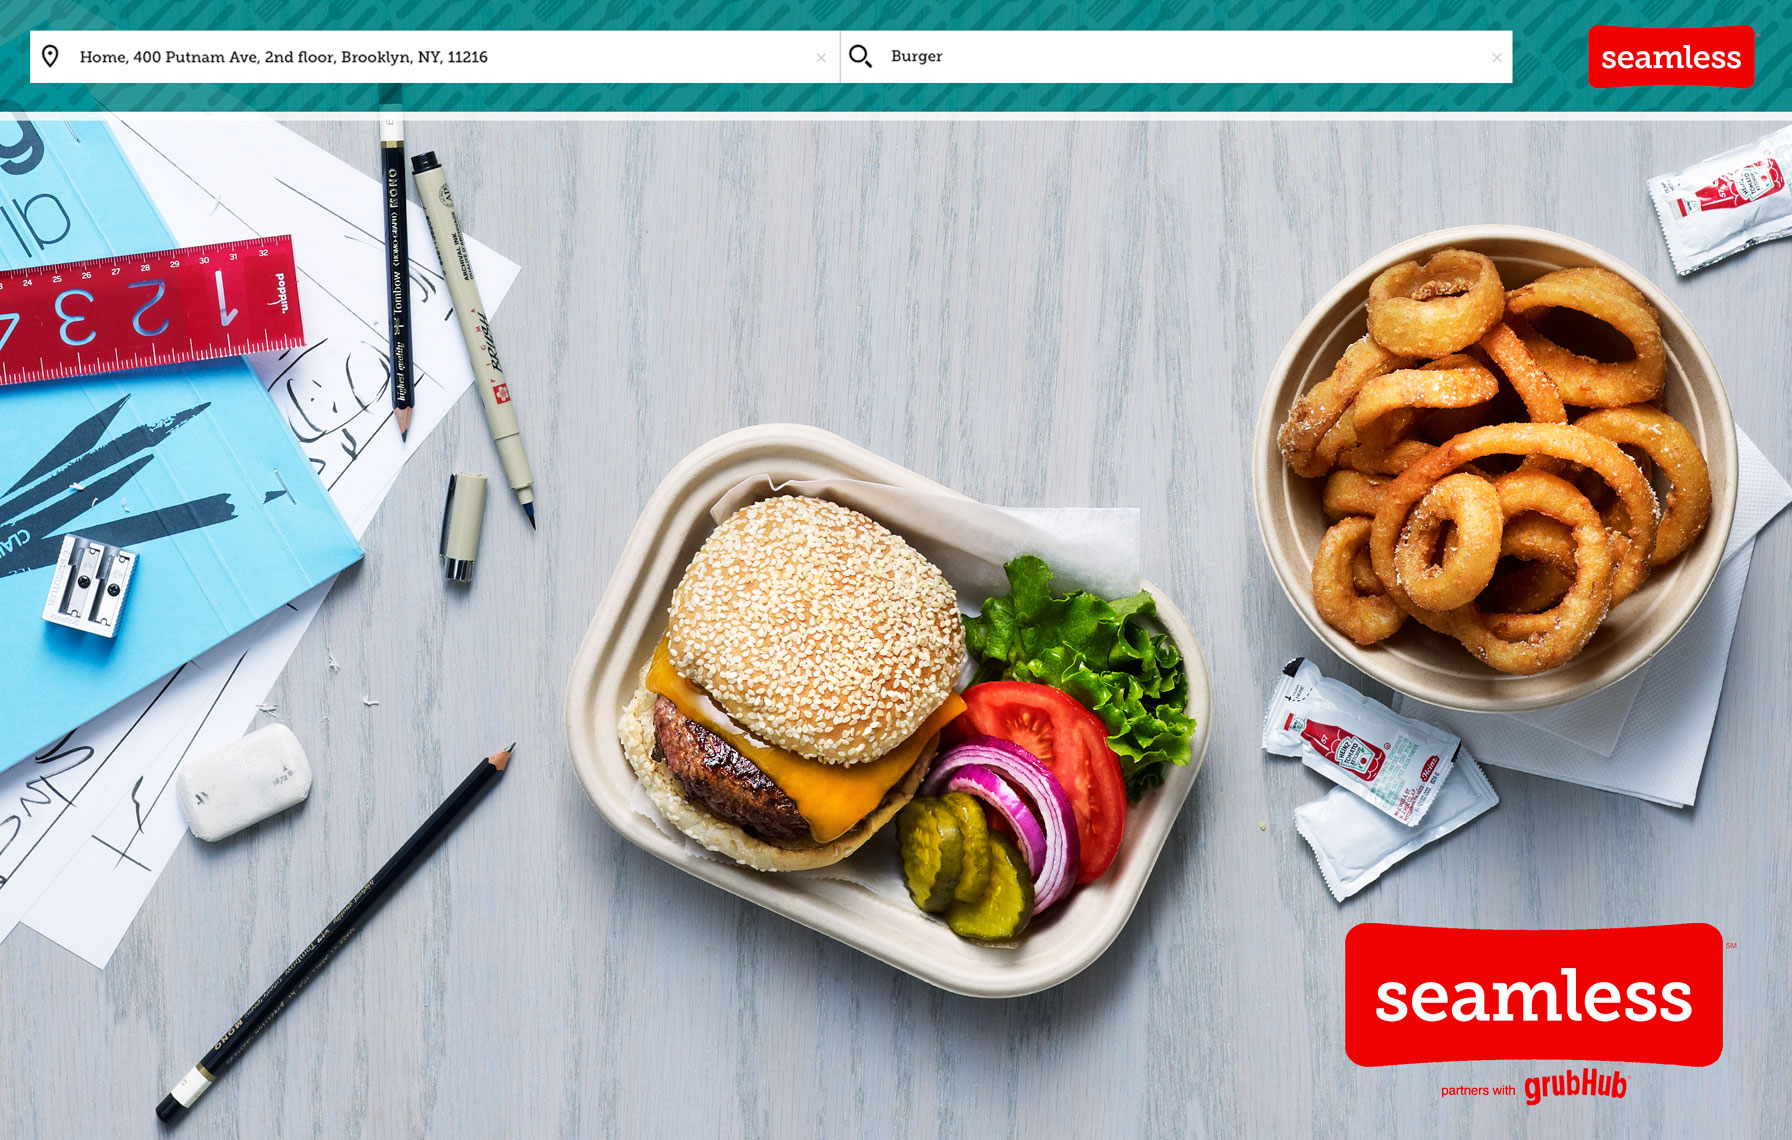 Seamless | Burger & Onion Rings